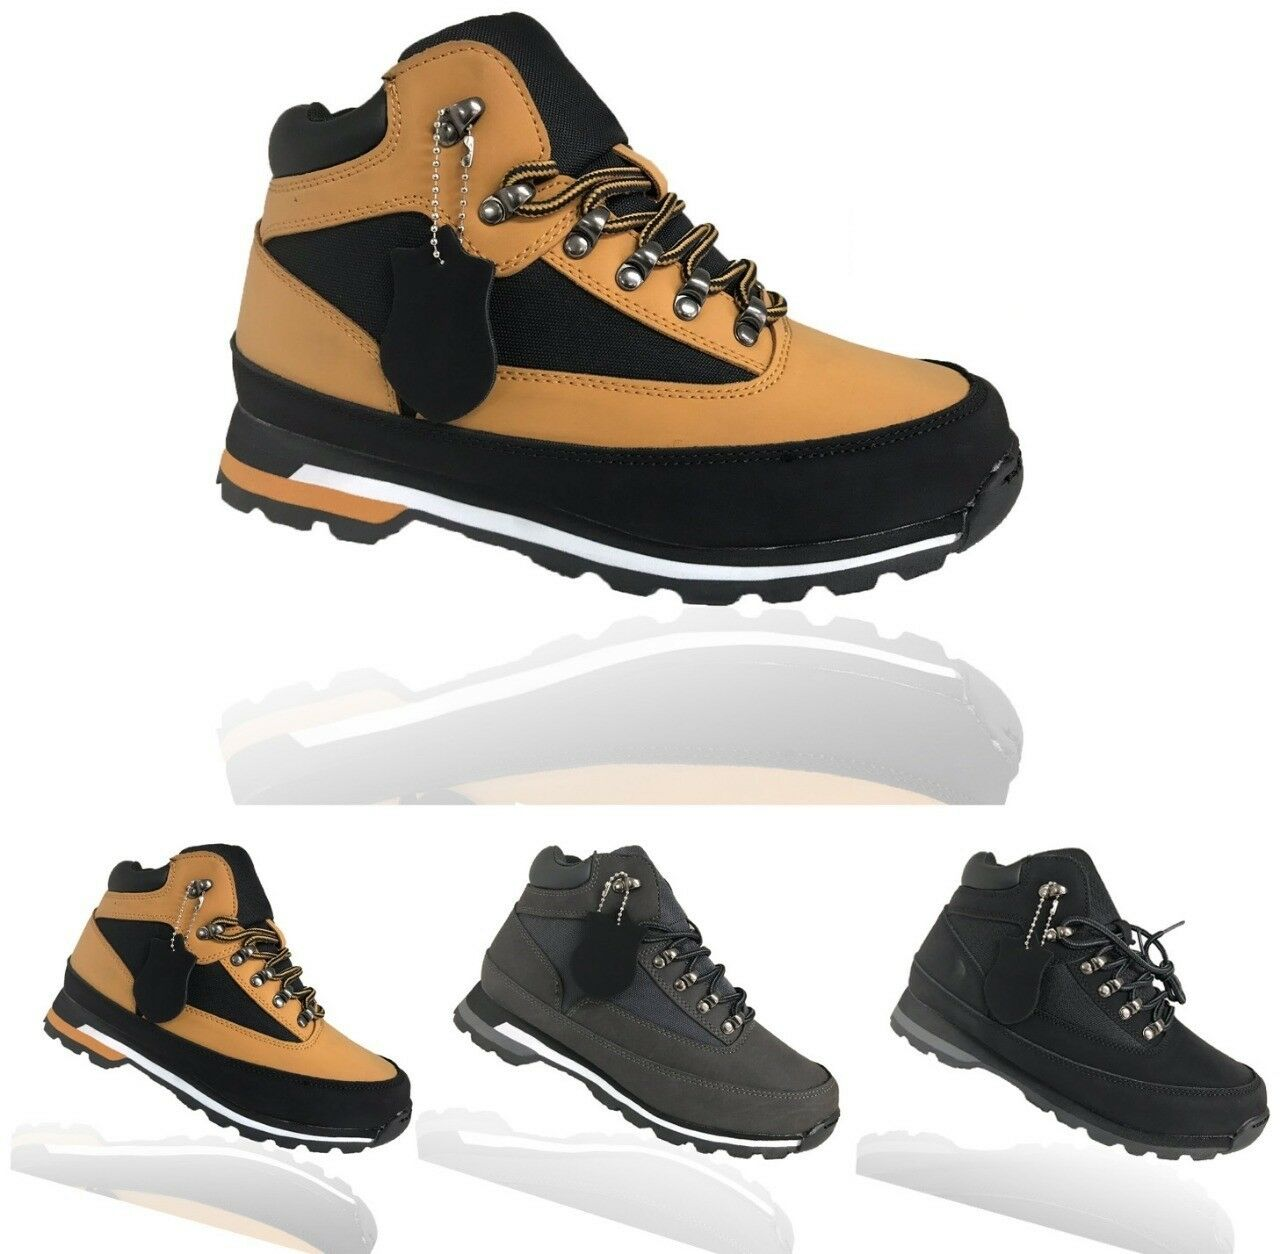 MENS GENTS CASUAL WALKING HIKING BOY SCHOOL OFFICE BOOTS TRAINER WORK SHOES SIZE